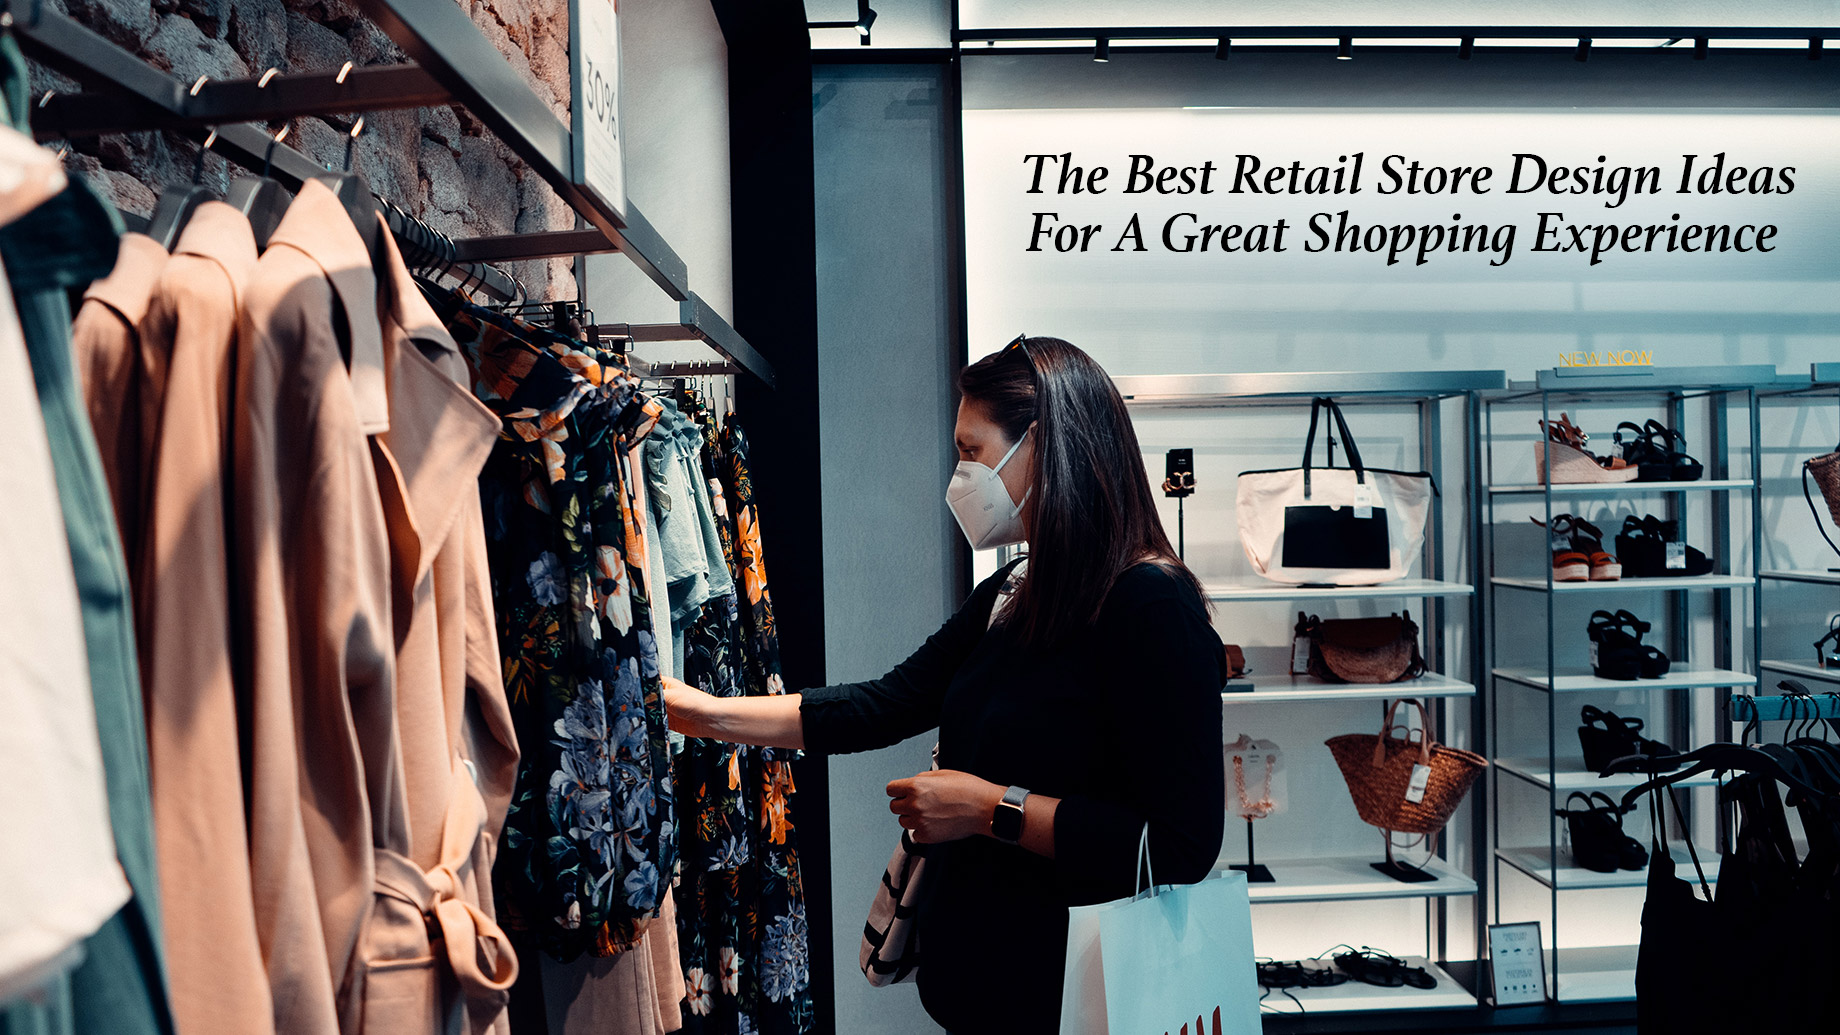 The Best Retail Store Design Ideas For A Great Shopping Experience